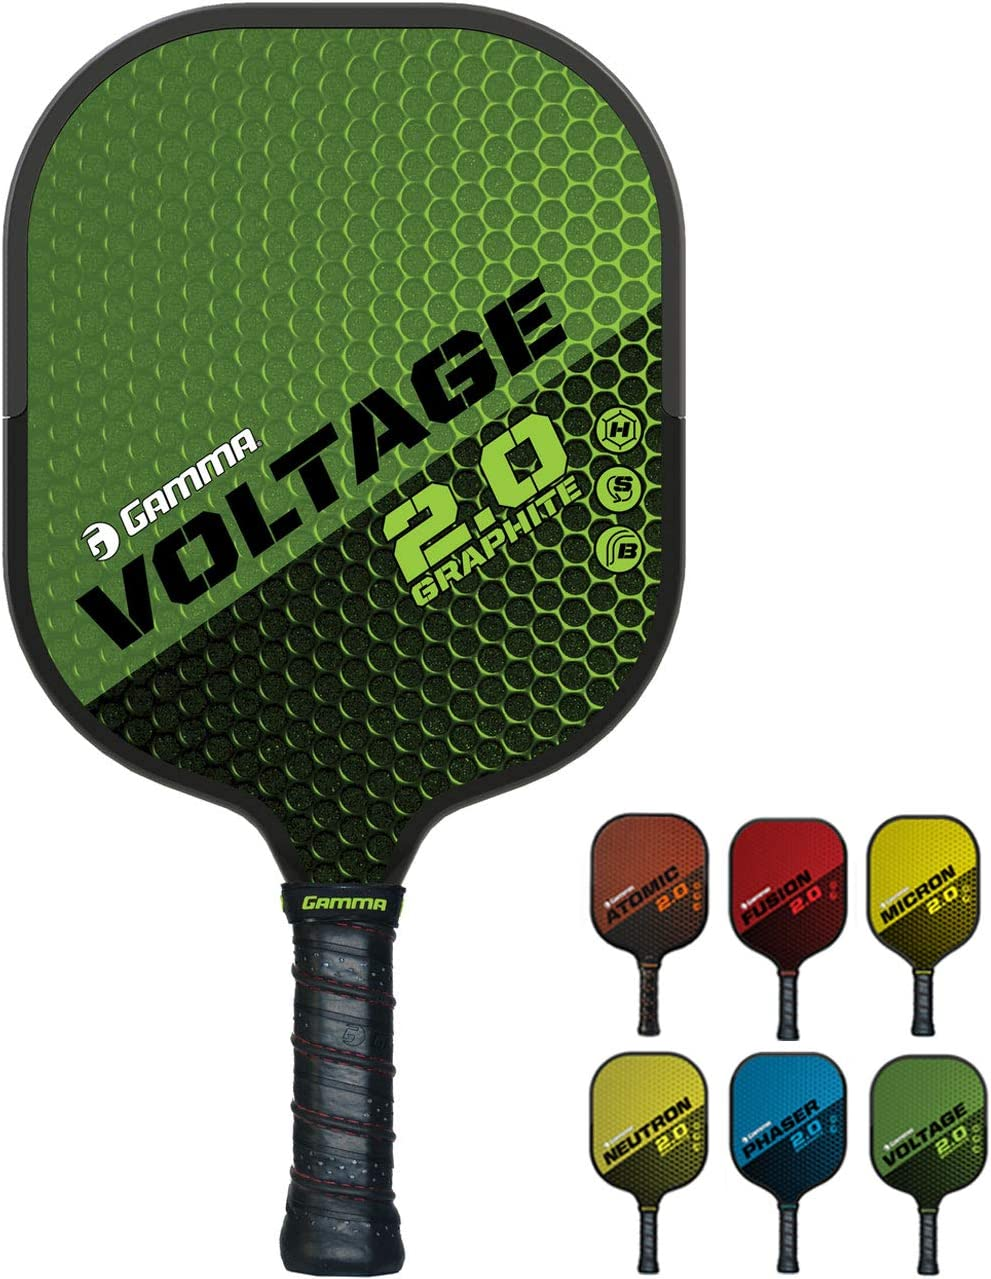 GAMMA Sports 2.0 Voltage Pickleball Paddle: Mens and Womens Textured Graphite Face Pickle-Ball Racquet - Indoor and Outdoor Racket: Green, ~7.6 oz : Sports & Outdoors